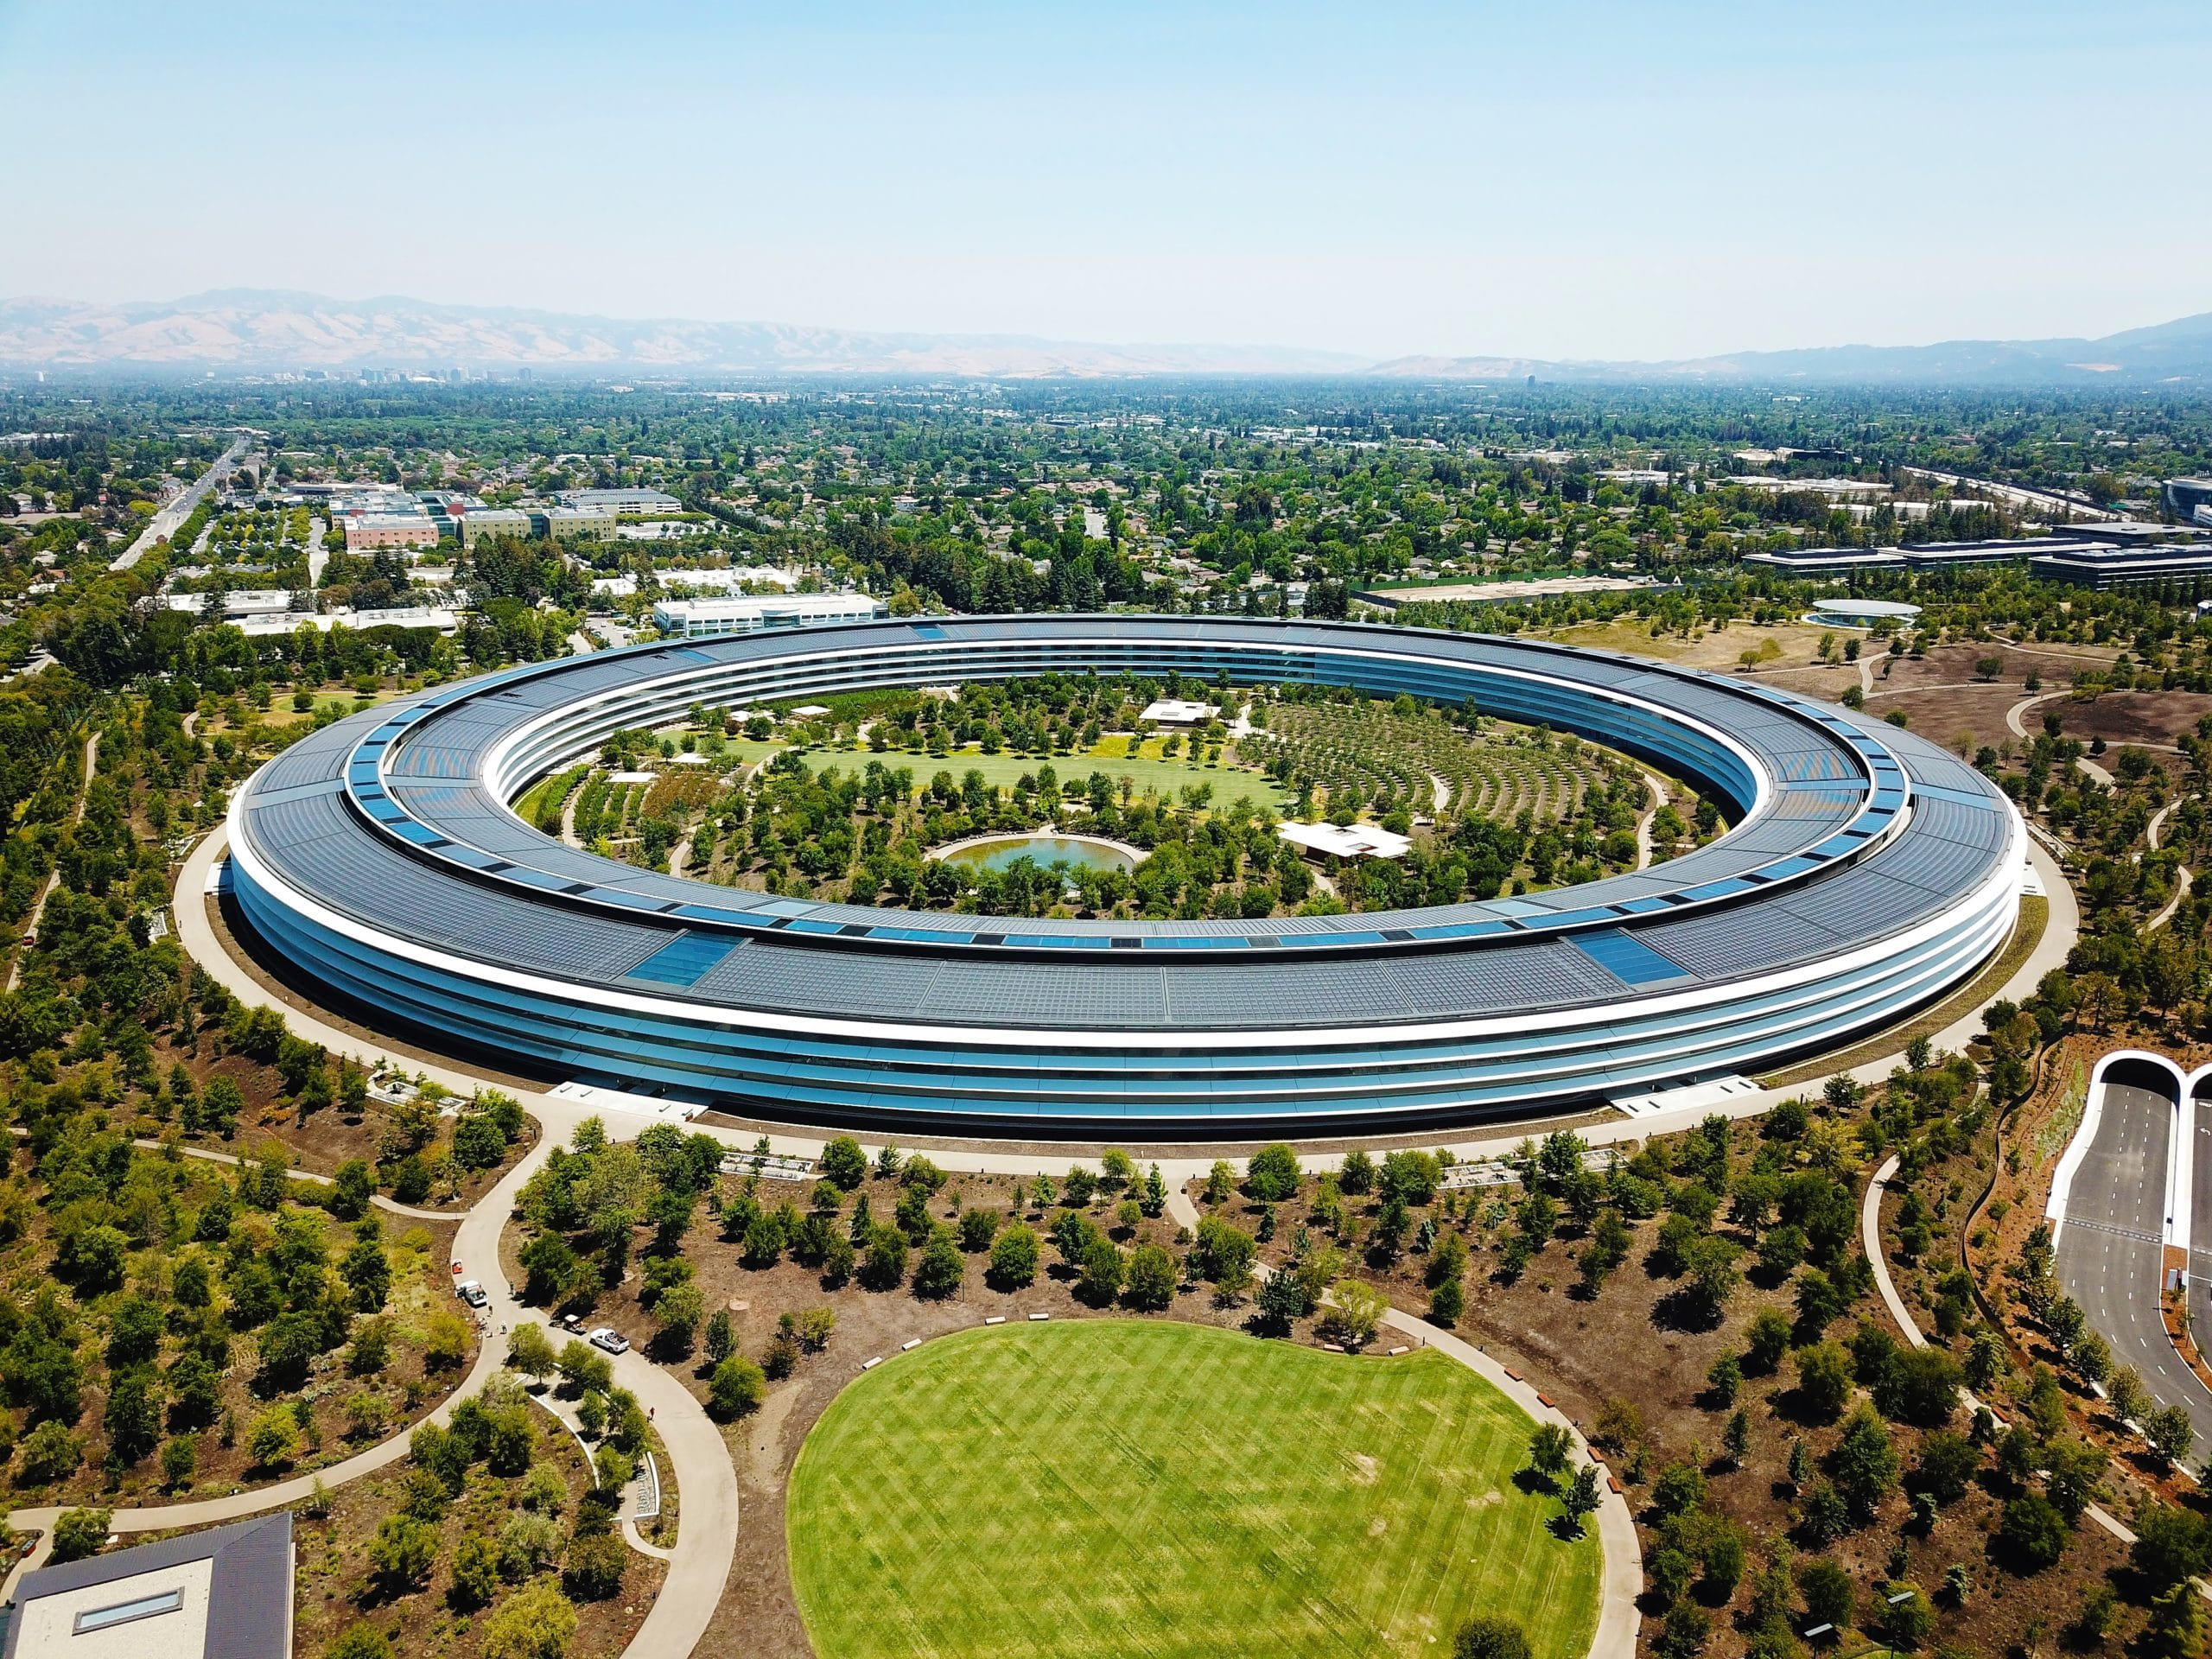 Foto aérea do Apple Park